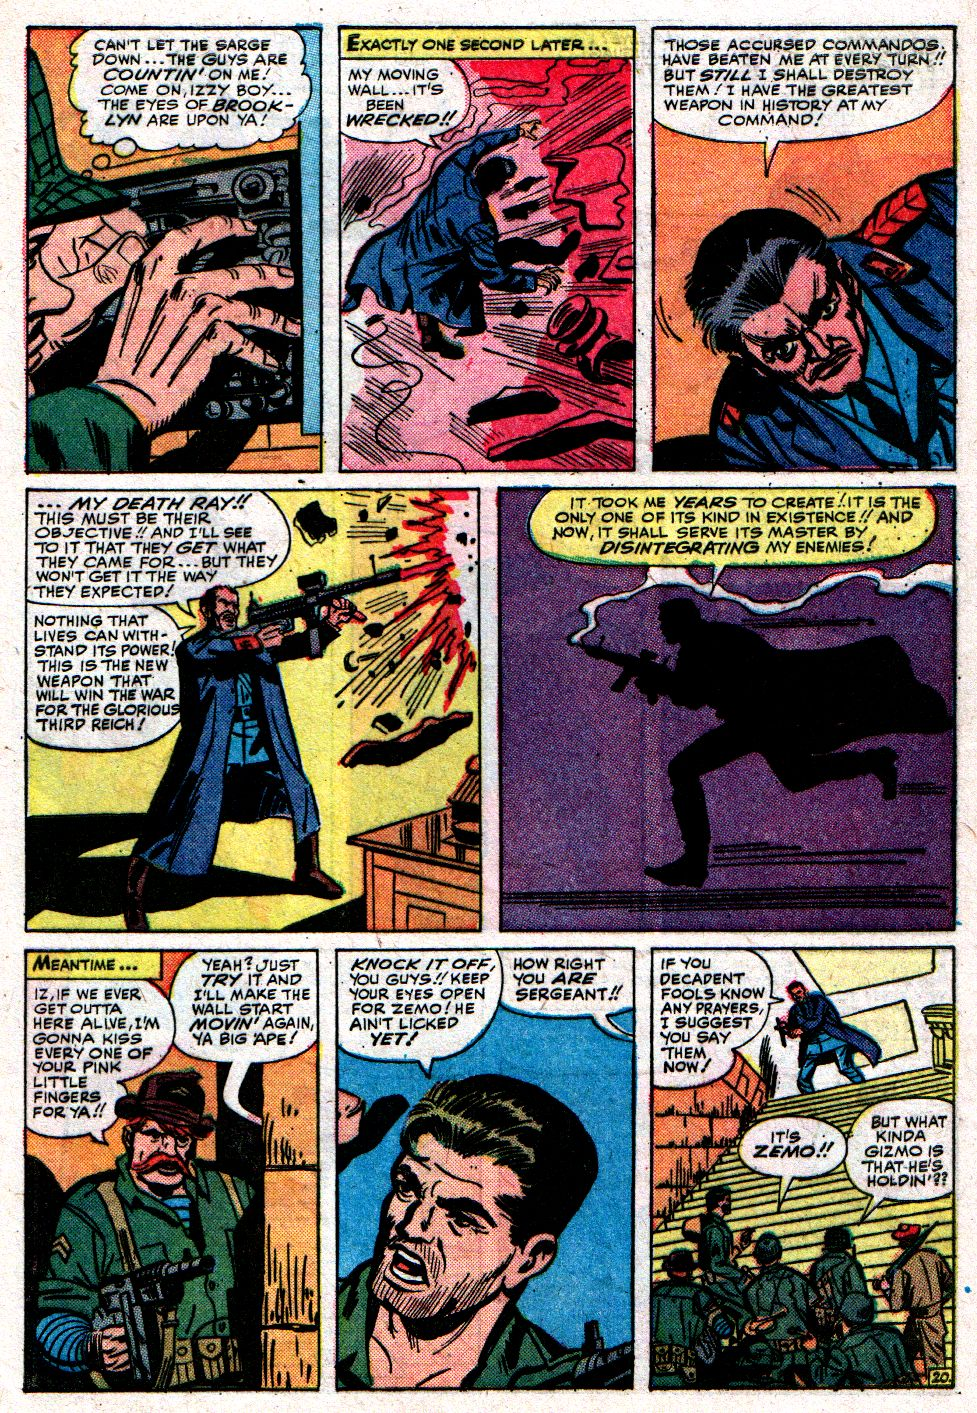 Read online Sgt. Fury comic -  Issue #8 - 29